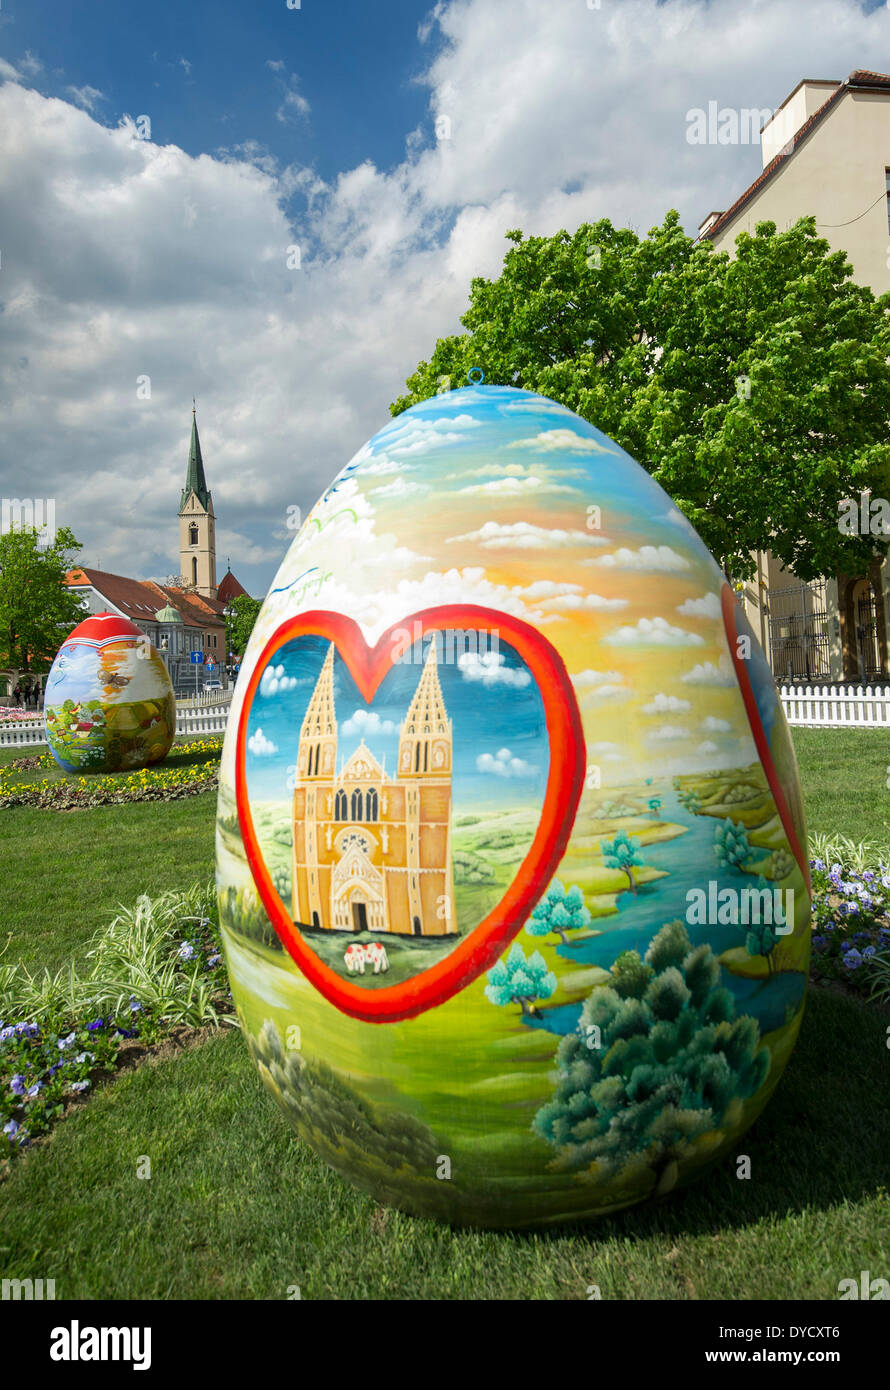 Zagreb, Croatia. 14th Apr, 2014. Photo taken on April 14, 2014 shows huge hand-painted Easter eggs on display near the Zagreb Cathedral on Kaptol in Zagreb, capital of Croatia, April 14, 2014. Several Easter eggs, painted in Croatian Naive art style by artists from the Koprivnica-Krizevci County, were set up in downtown Zagreb to celebrate Easter. © Miso Lisanin/Xinhua/Alamy Live News - Stock Image